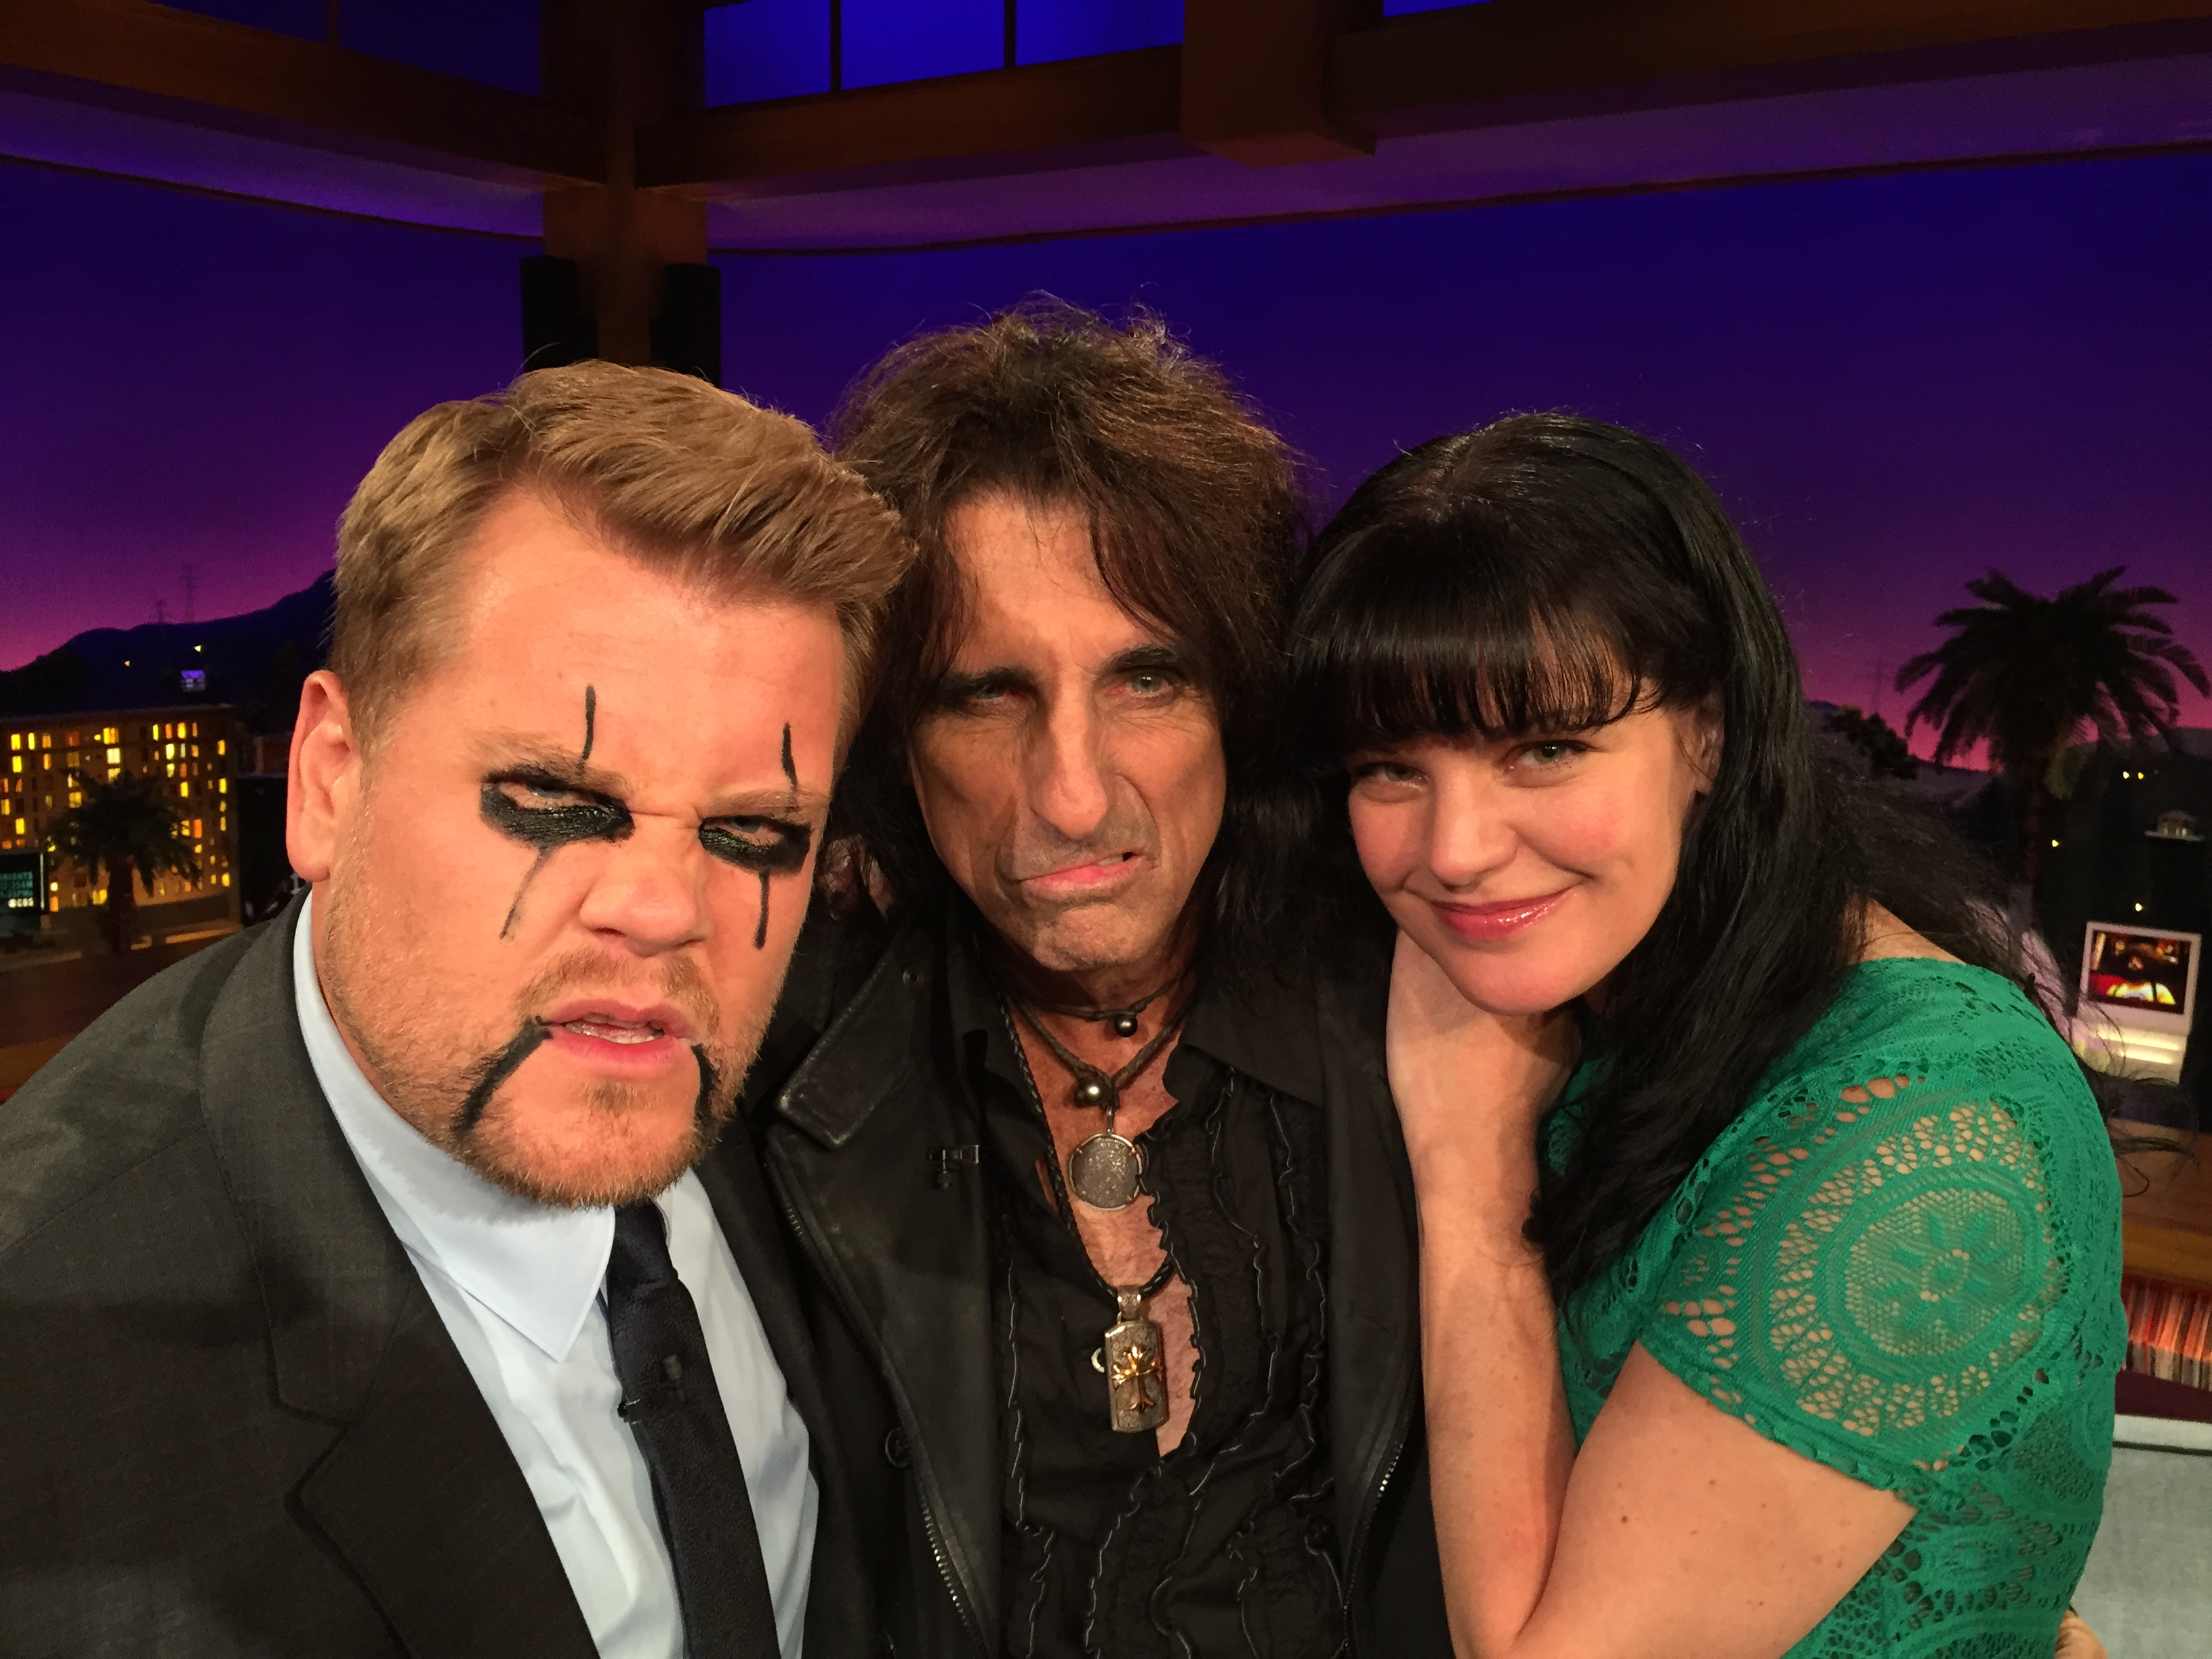 Pauley Perrette and her pal Alice Cooper showing off their makeup art on James